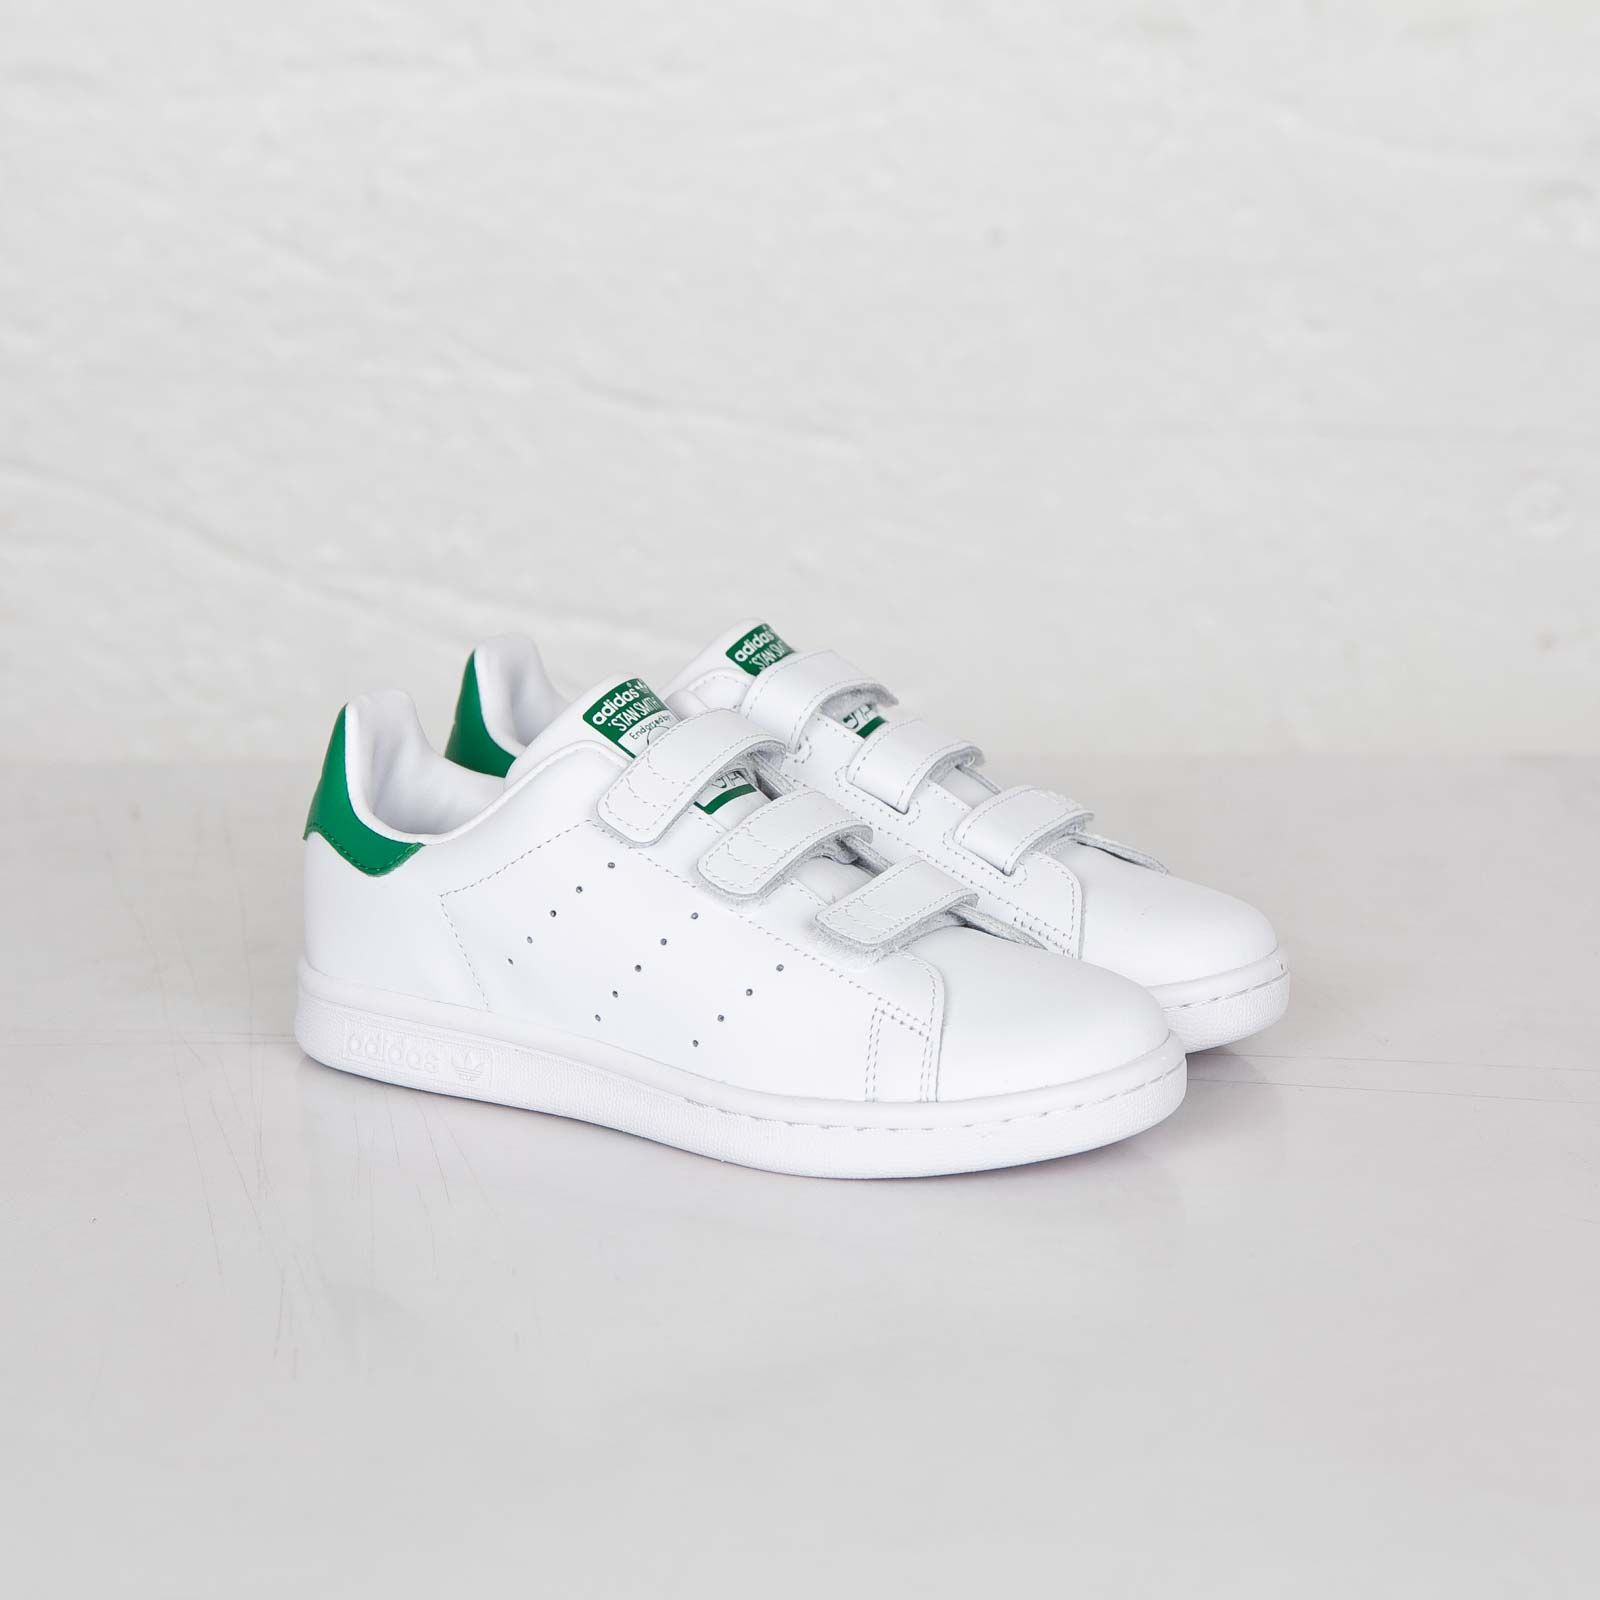 men's adidas stan smith with suitcase getting into taxi